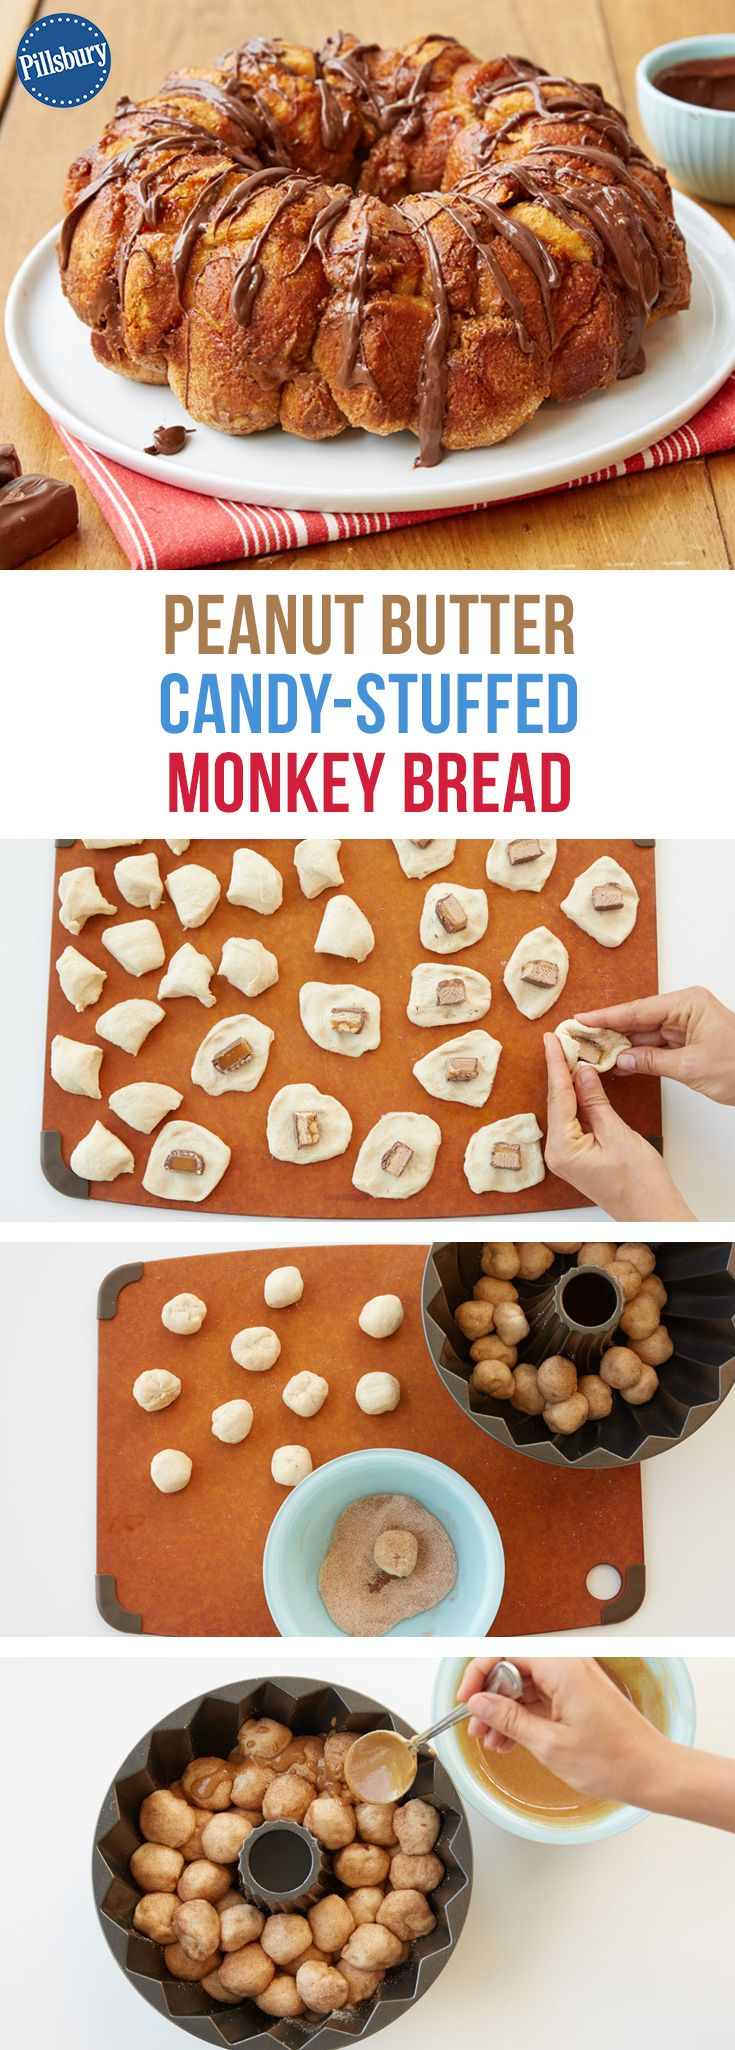 A quick trick for a great treat? This crazy good combo of candy-stuffed, peanut butter-coated, Nutella-drizzled monkey bread has to be one of our favorites! This indulgent, yet delicious monkey bread can be made for special occasions when you really have a sweet tooth and candy laying around the house (aka. Halloween). You won't be disappointed after making this one-of-a-kind recipe and sharing it at a fun party!